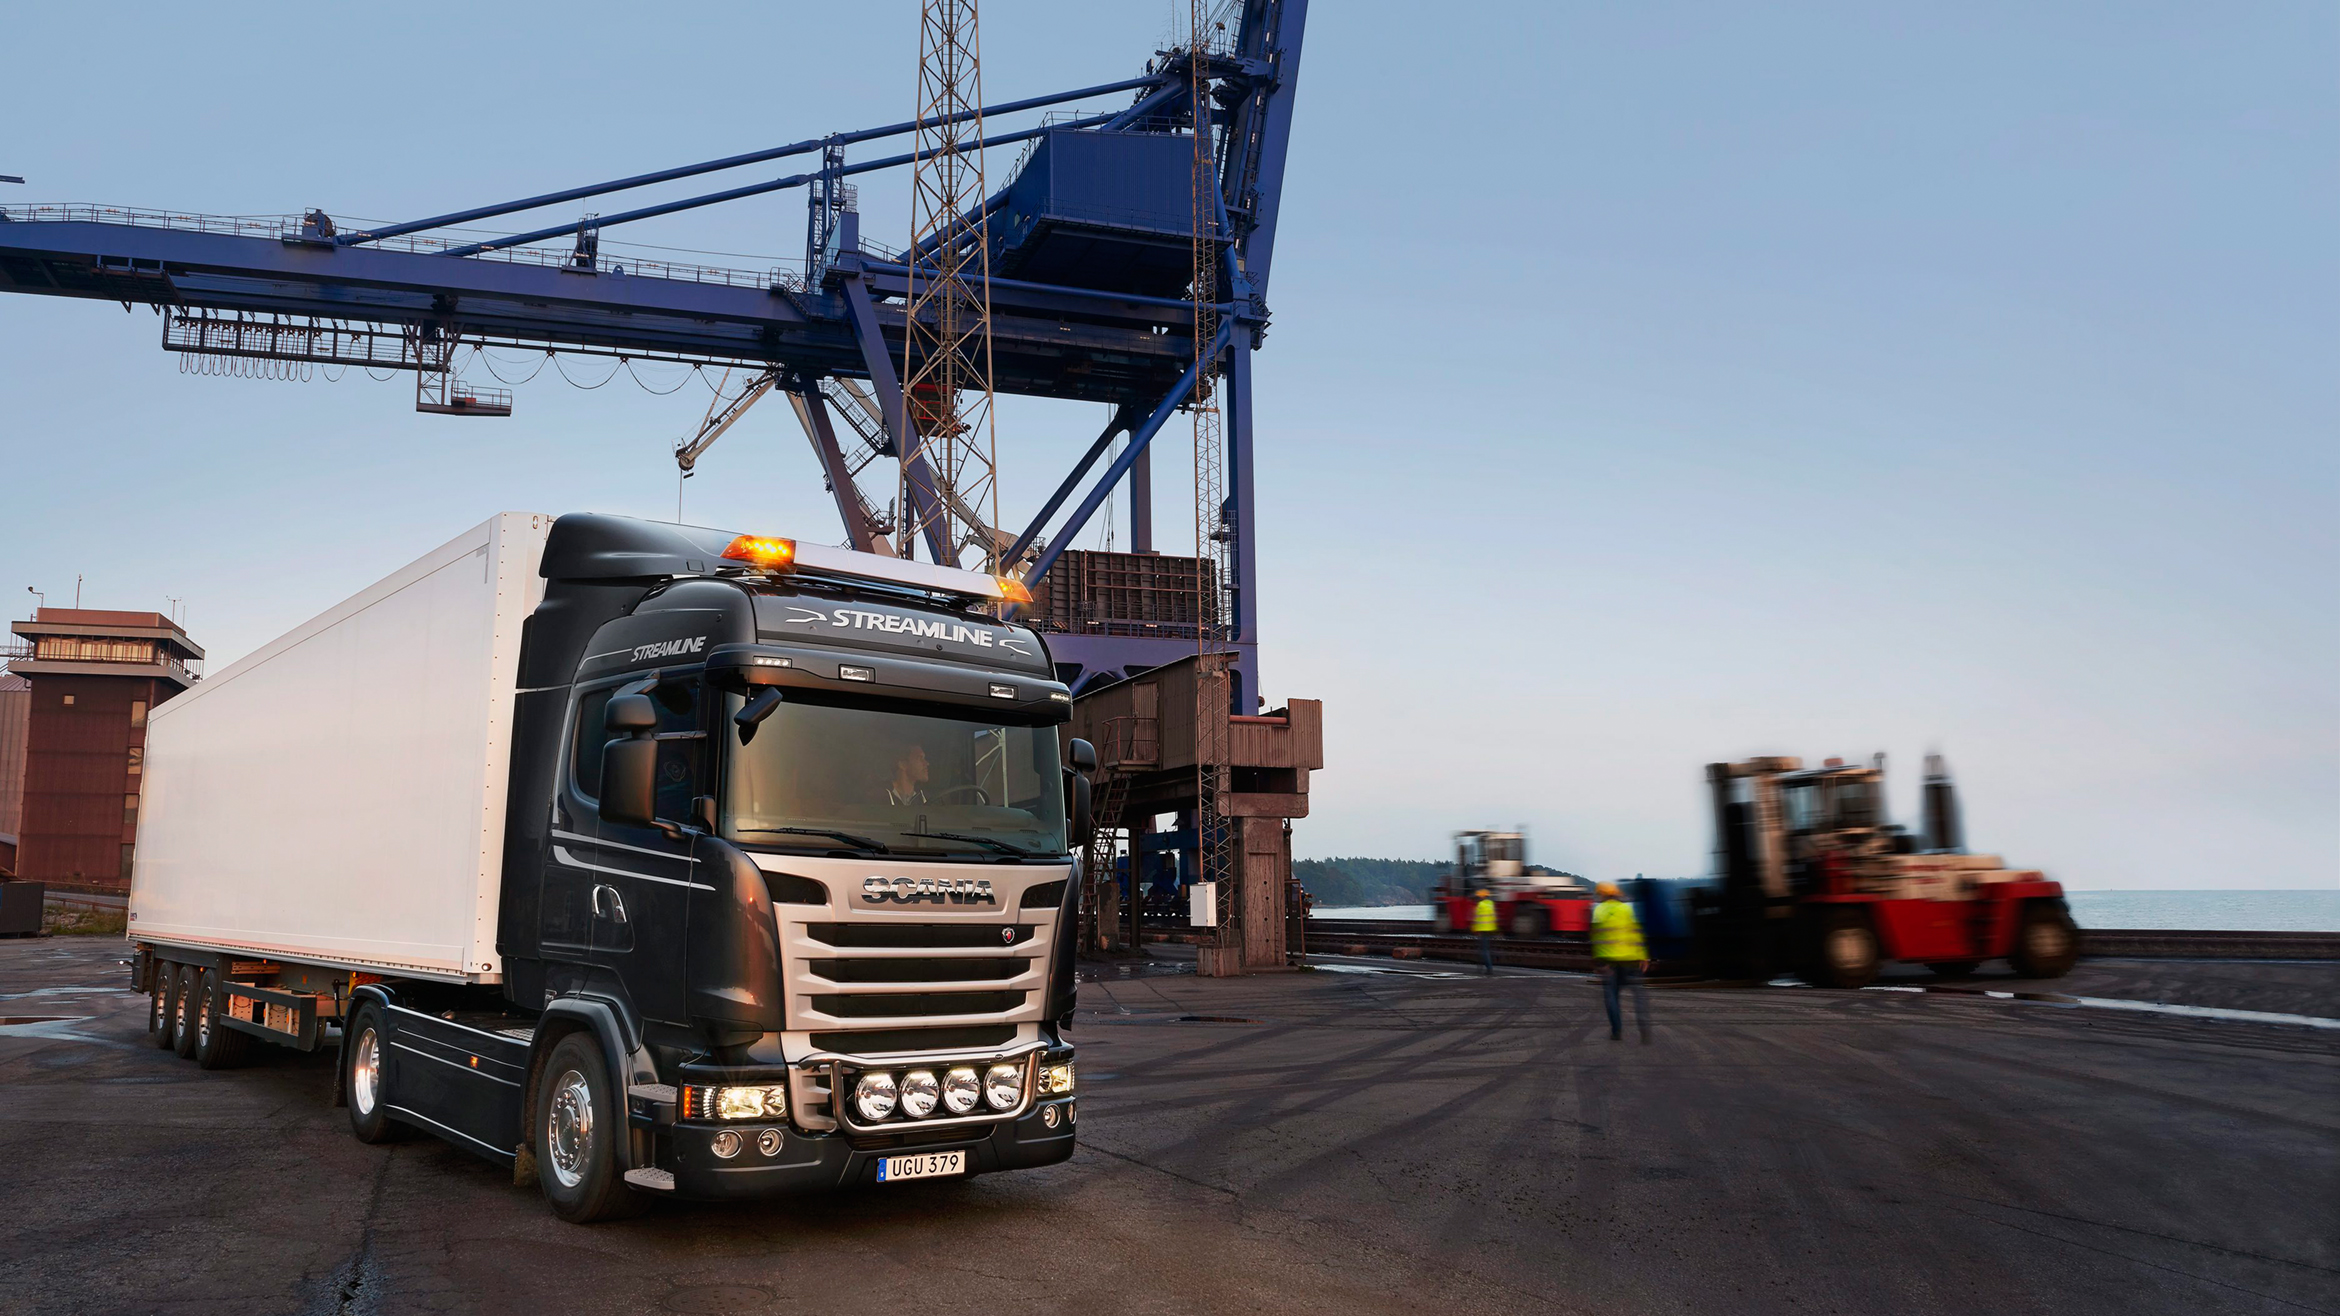 A Scania truck in front of a large crane by the sea